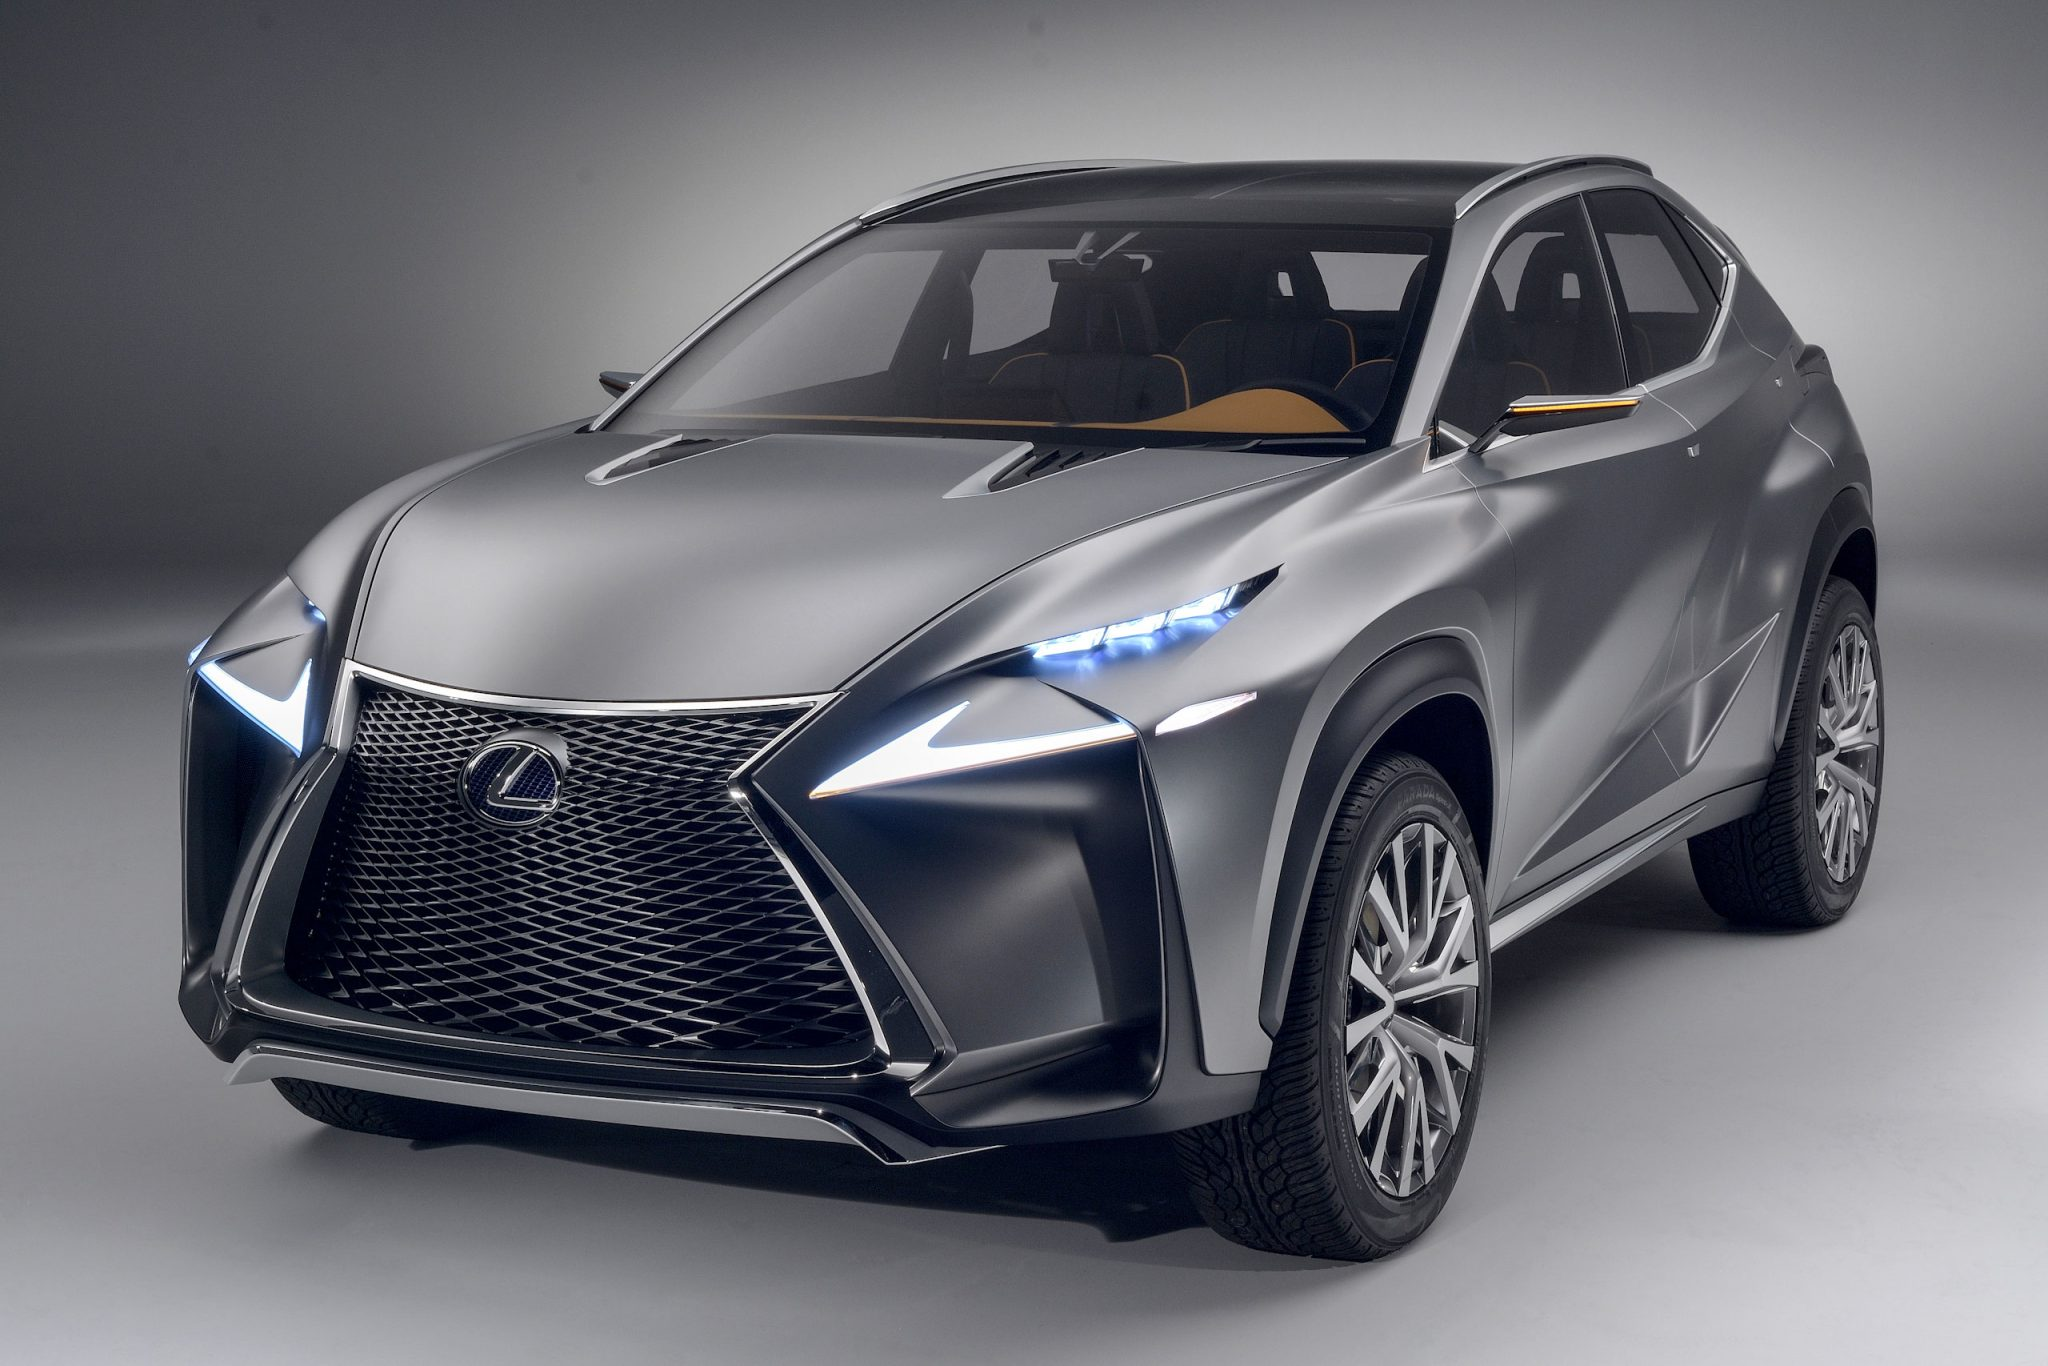 Lexus Lf Nx >> Lexus Cars - News: LF-NX concept revealed